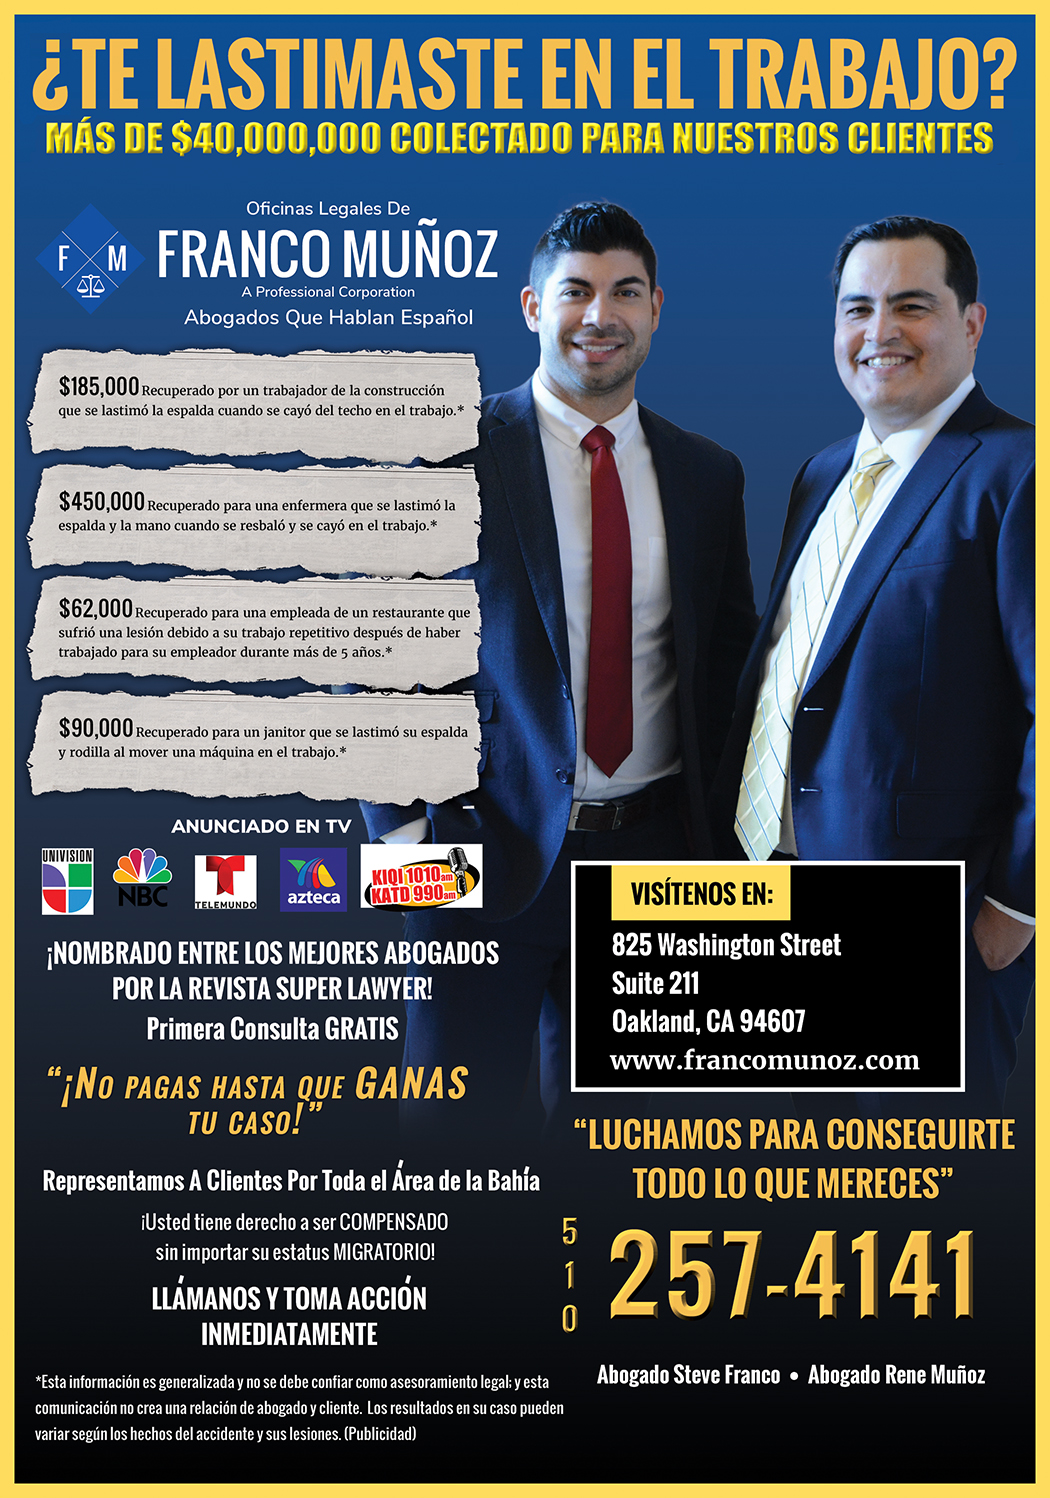 Franco Munoz - Law Office 1 Pag GLOSSY - feb 2018.jpg